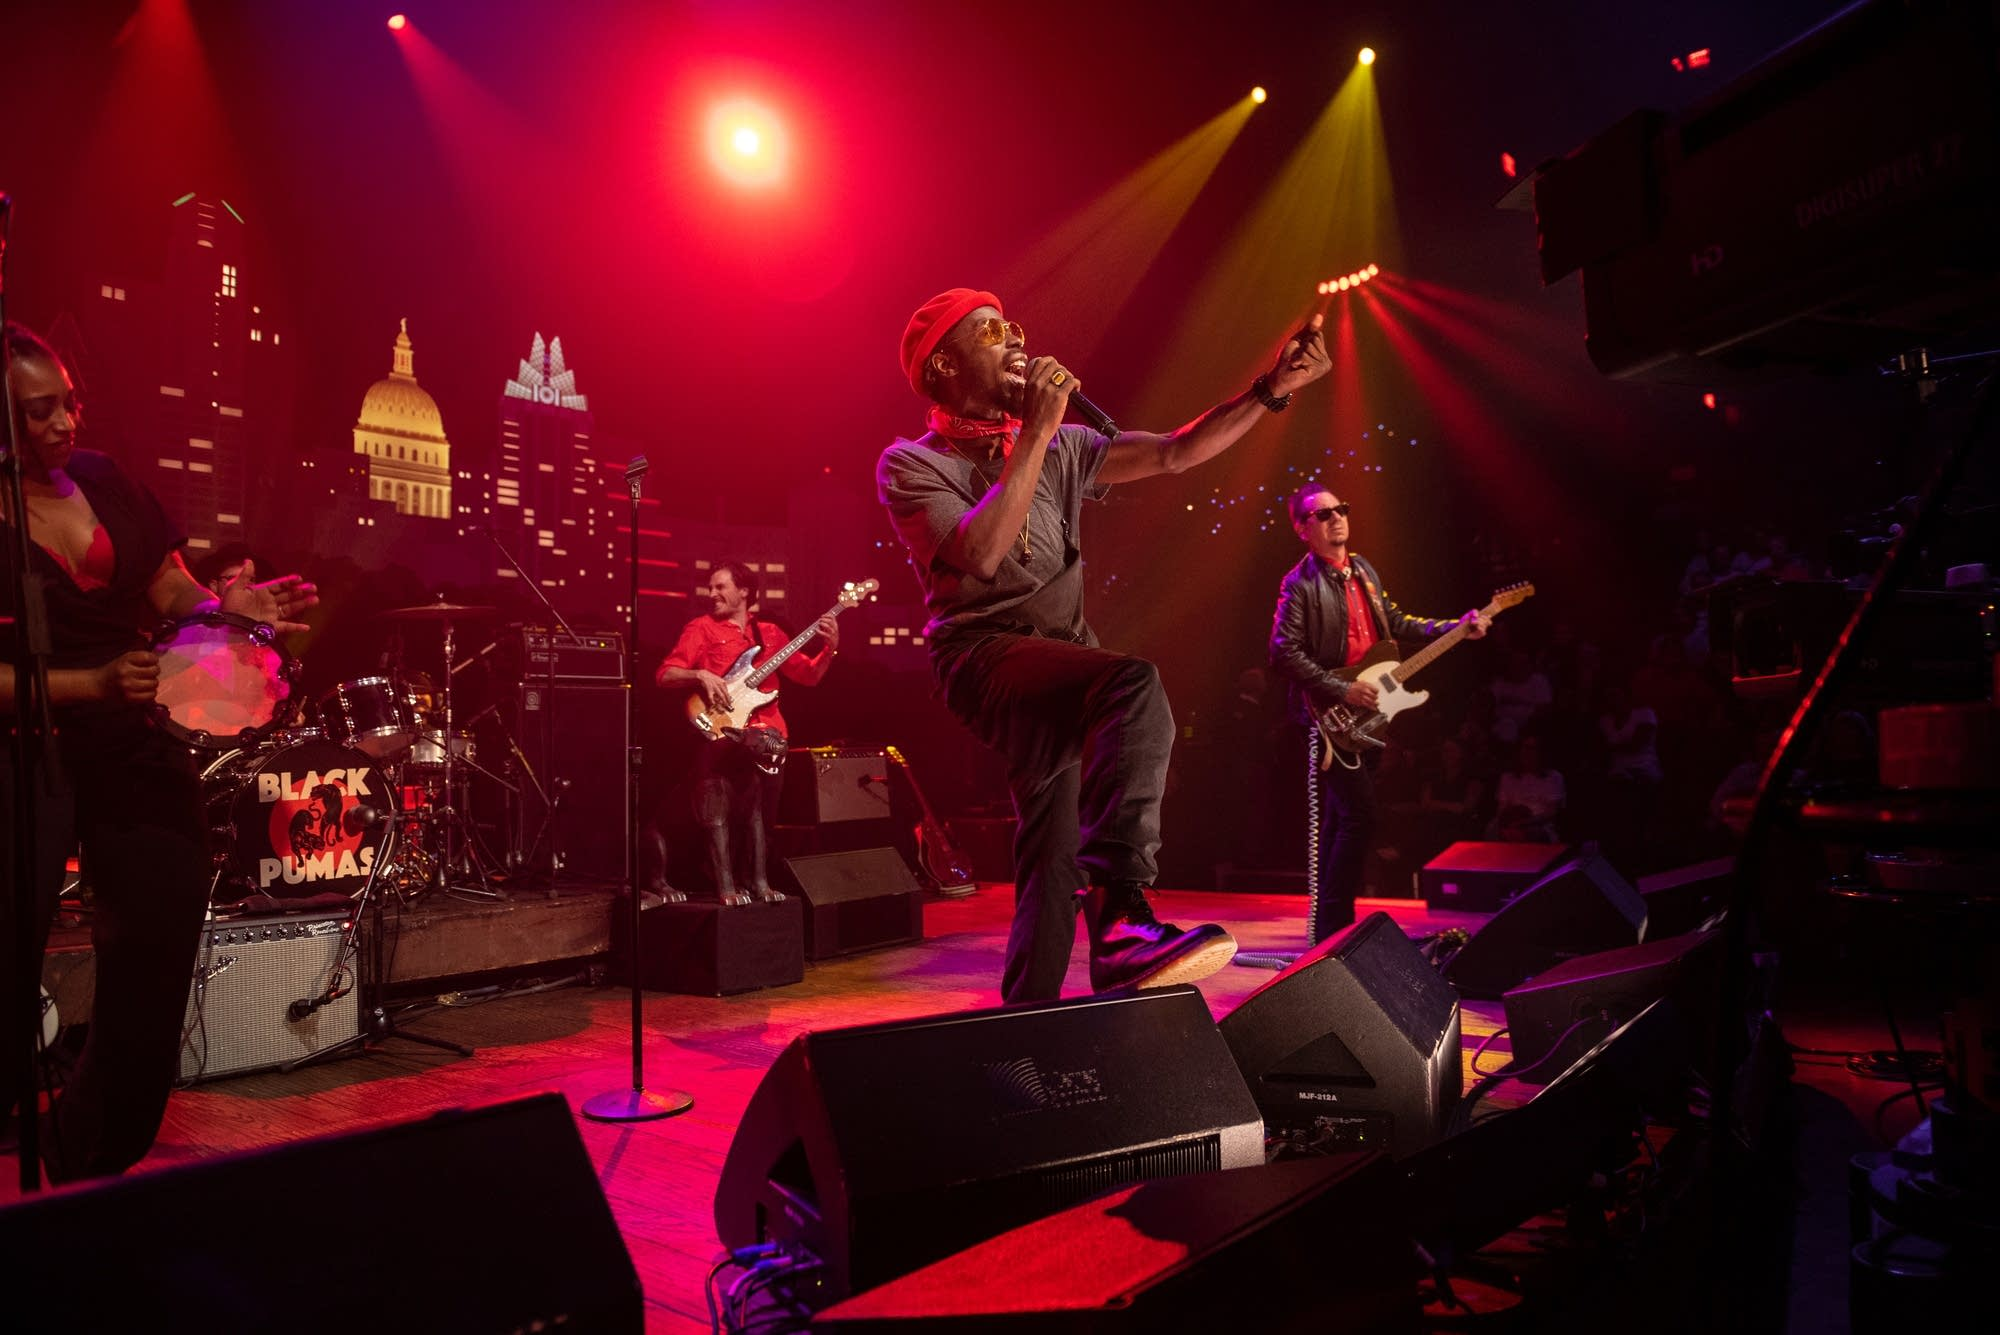 Black Pumas perform on 'Austin City Limits' on PBS